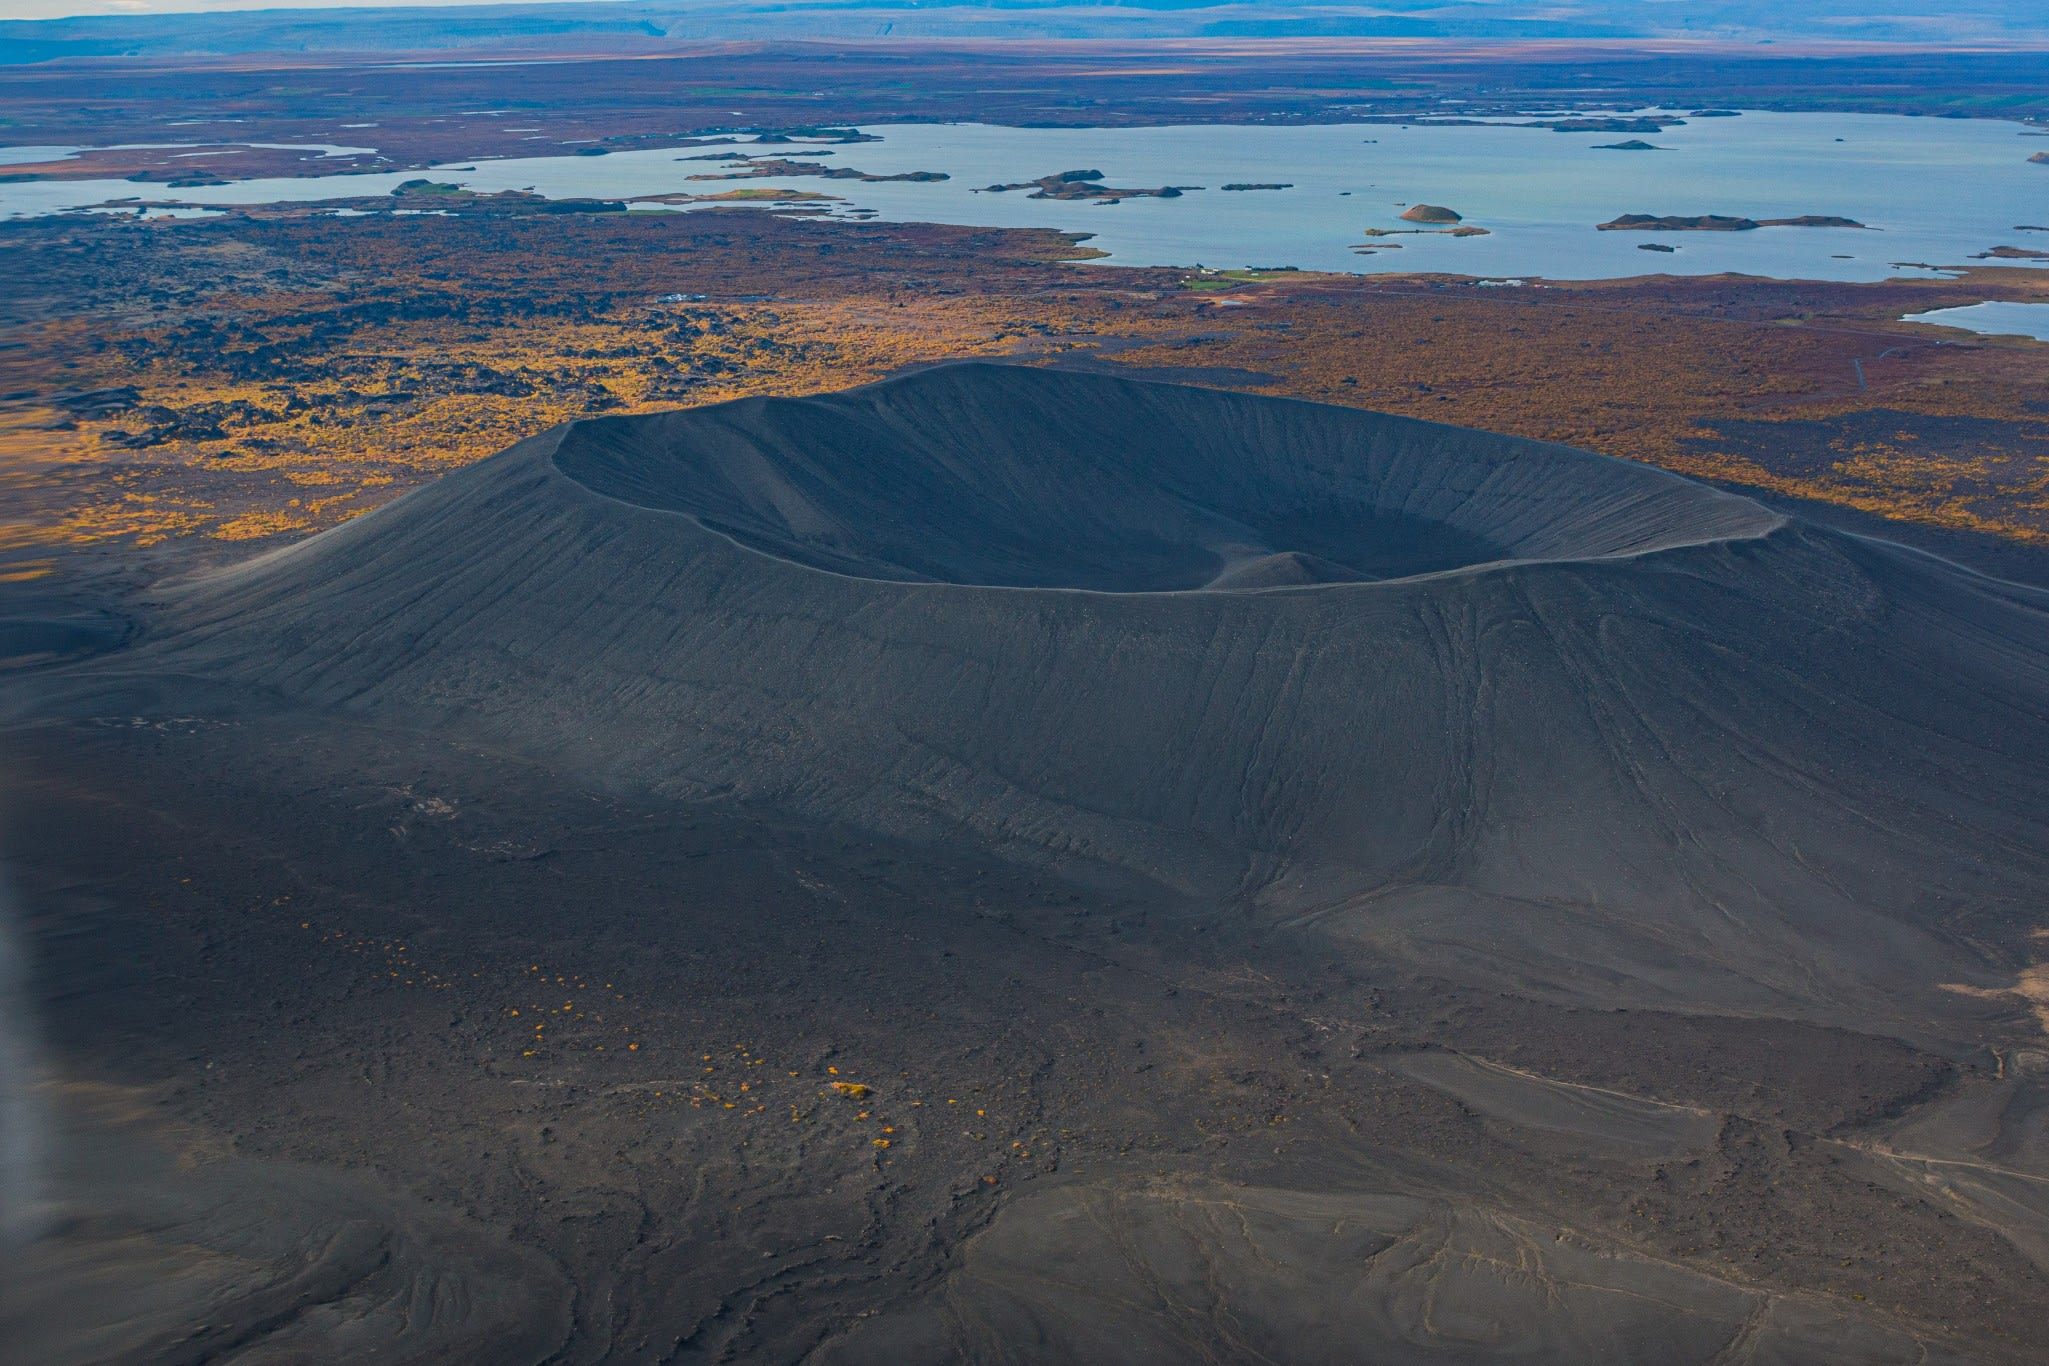 One of Myvatn's large craters pictured from above with views behind of the blue waters and volcanic landscape